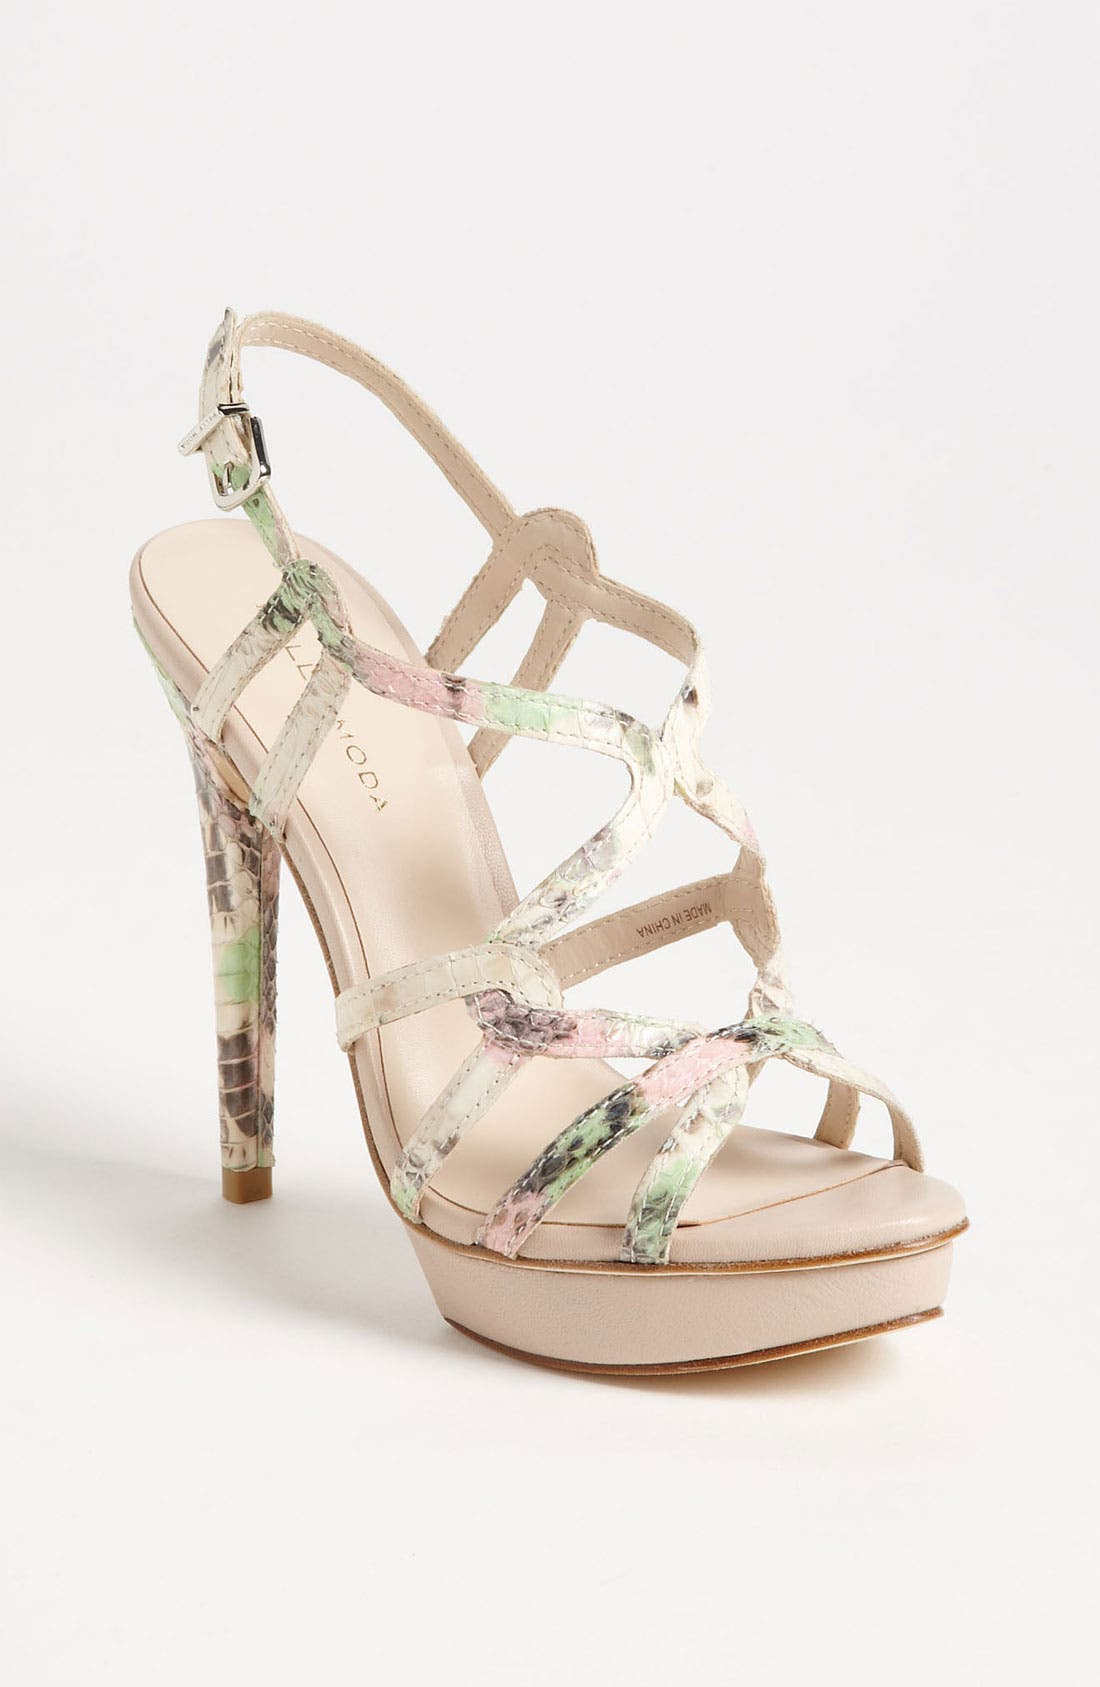 Alternate Image 1 Selected - Pelle Moda 'Flirty' Sandal